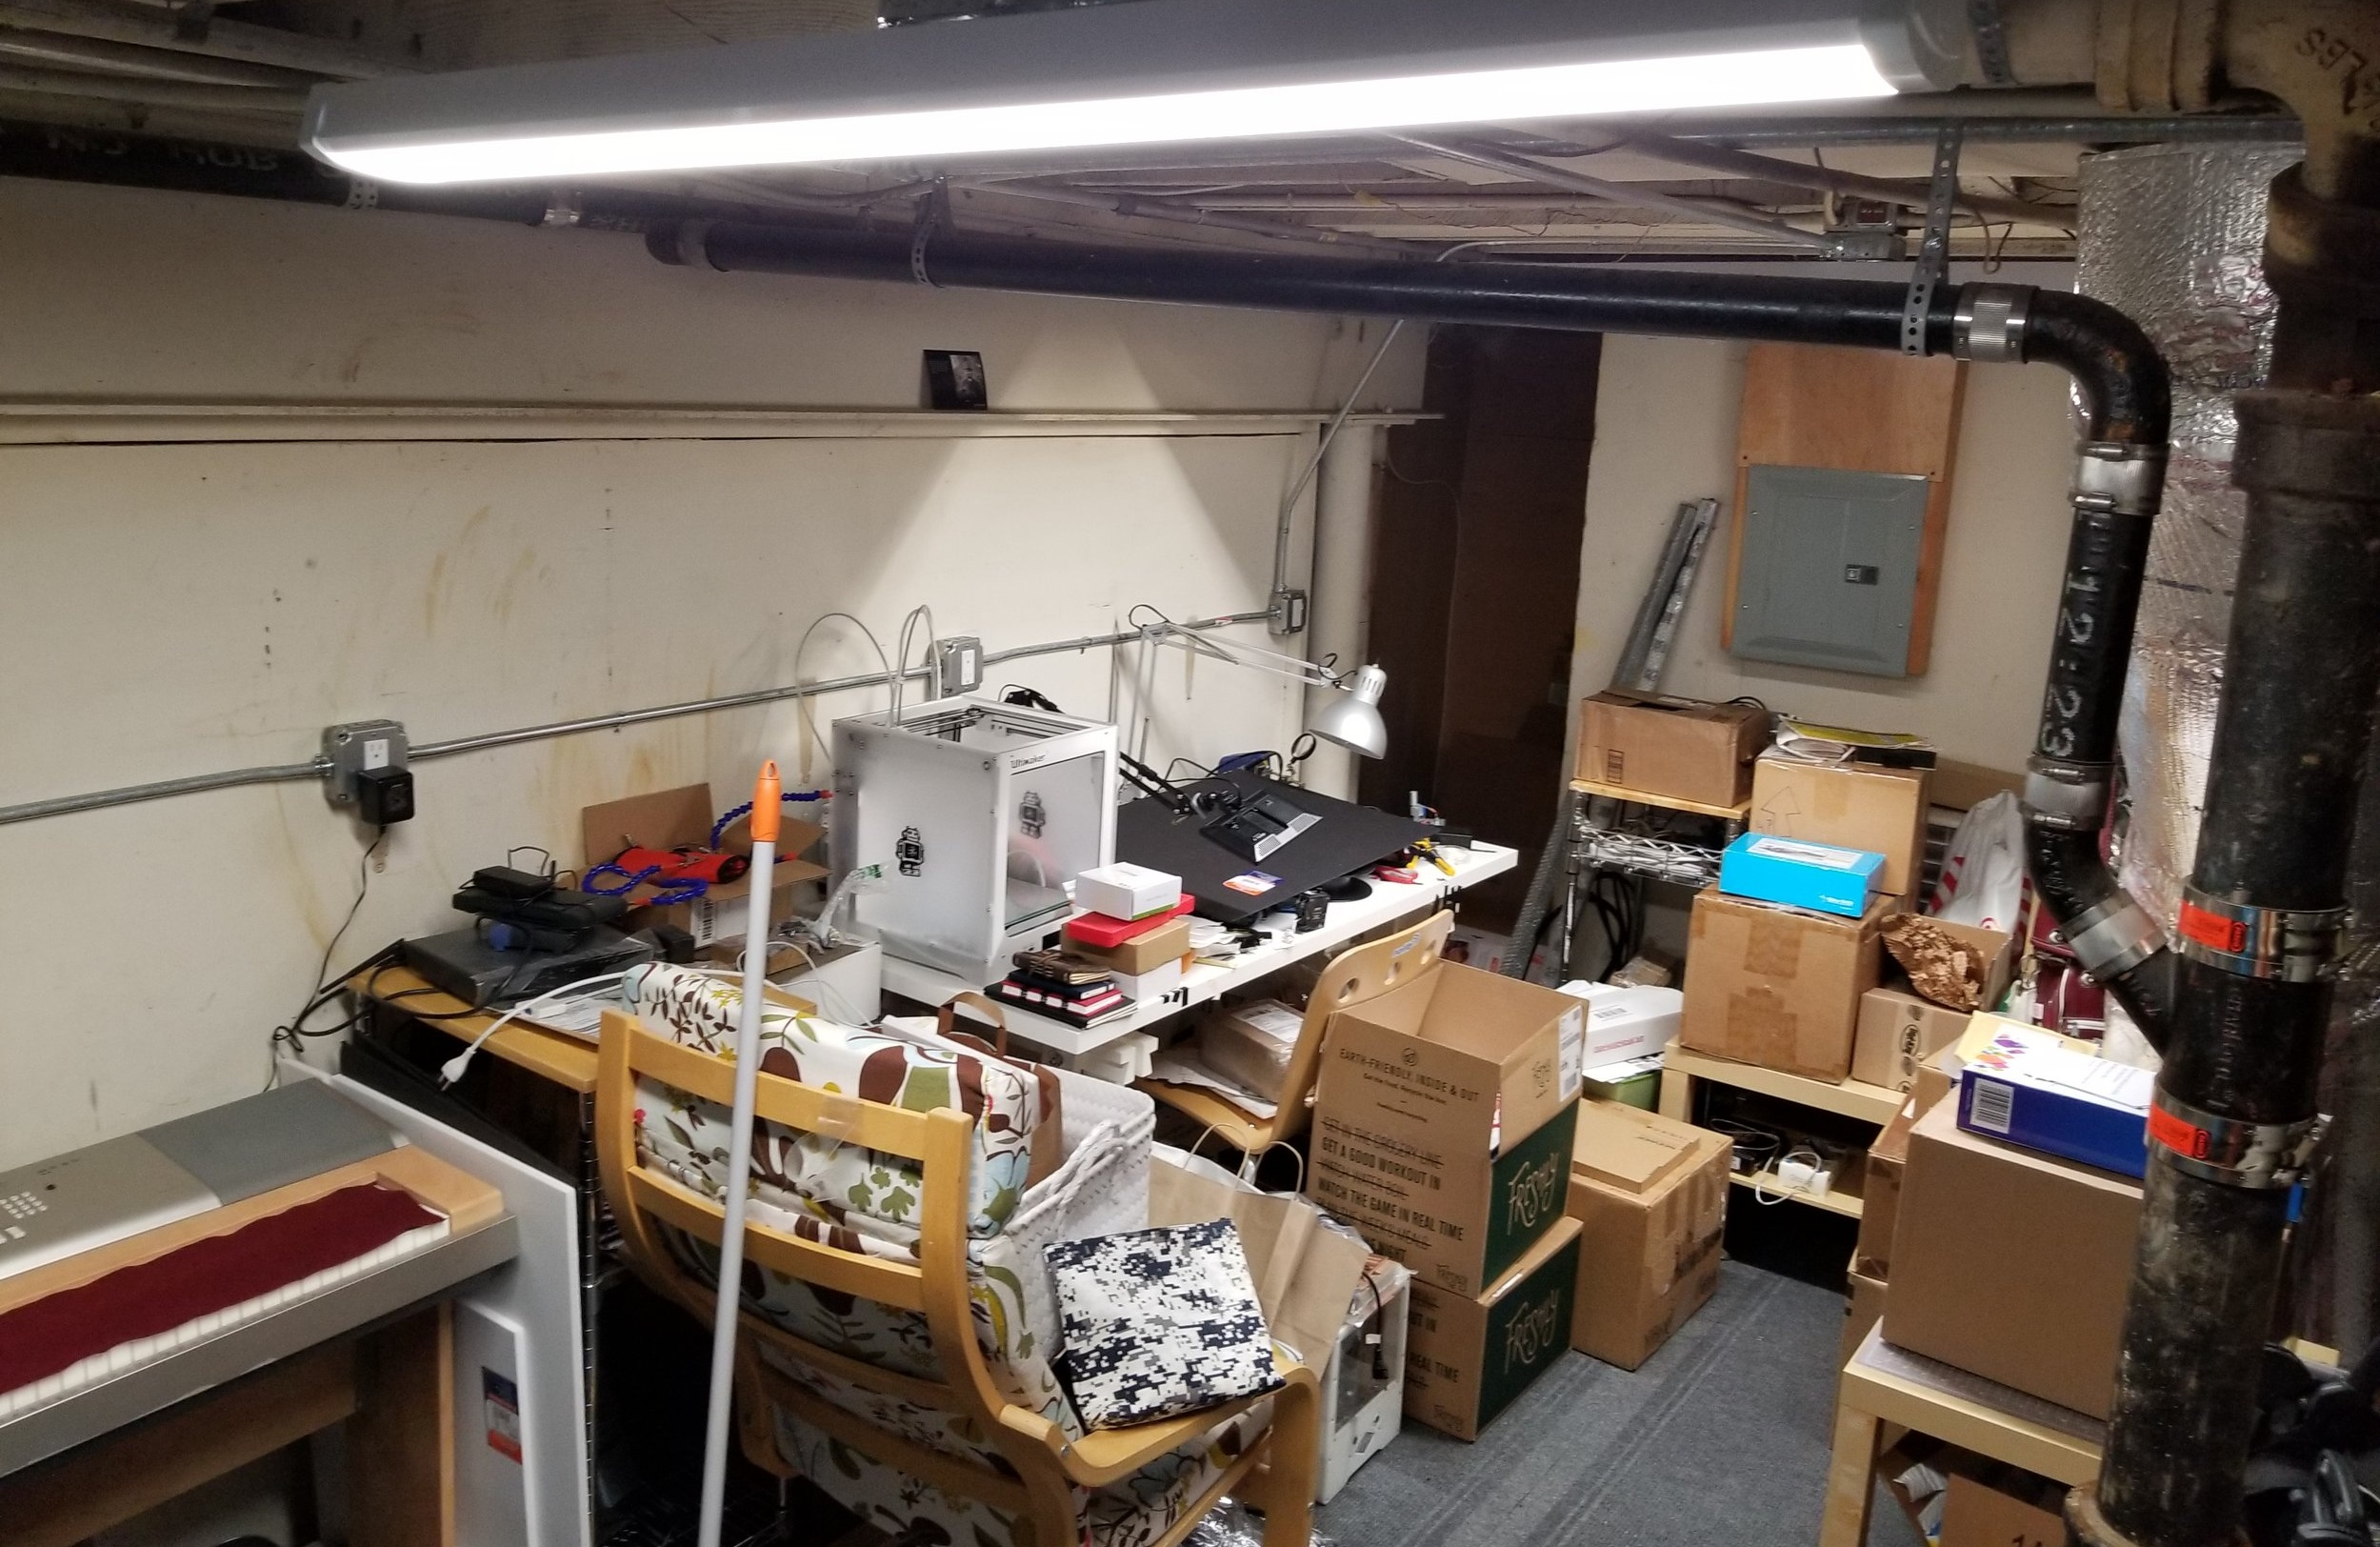 What was once a scary, basement collection-zone became….